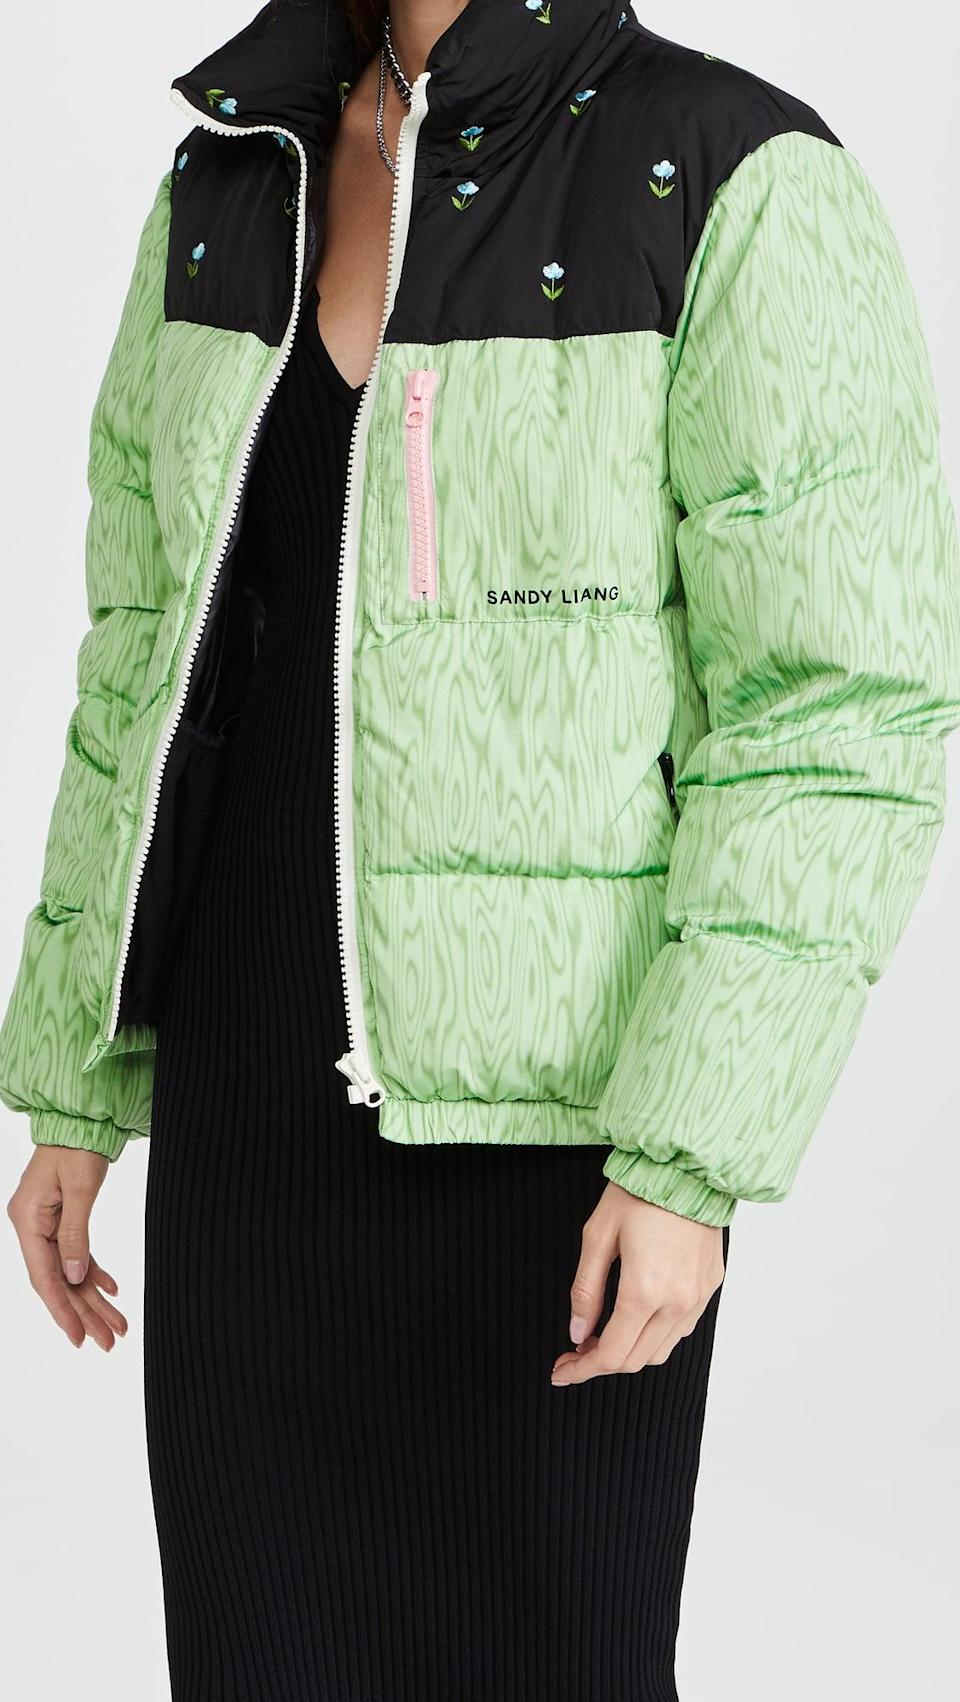 <p>This <span>Sandy Liang Jeffrey Puffer Jacket</span> ($890) is a little bit whimiscal, which we love. The pink zipper against the green print is so fun, and we love the little floral details too.</p>